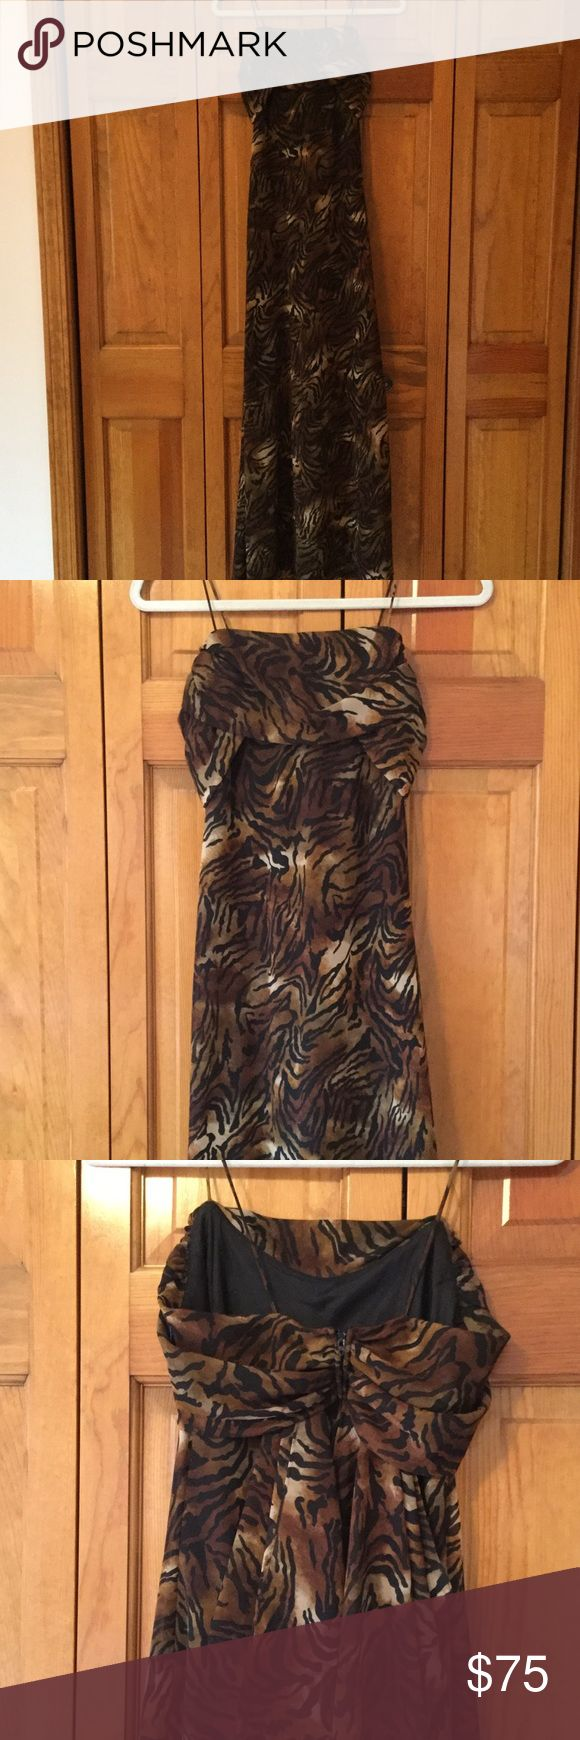 Animal print long dress by Betsy & Adam by Jaslene Light weight Flowy dress with zipper back and scarf like detail. Lined inside. Material label removed. I'm guessing it's poly or rayon. Pretty dress for a special occasion. Length is approx 49 1/2 Dresses